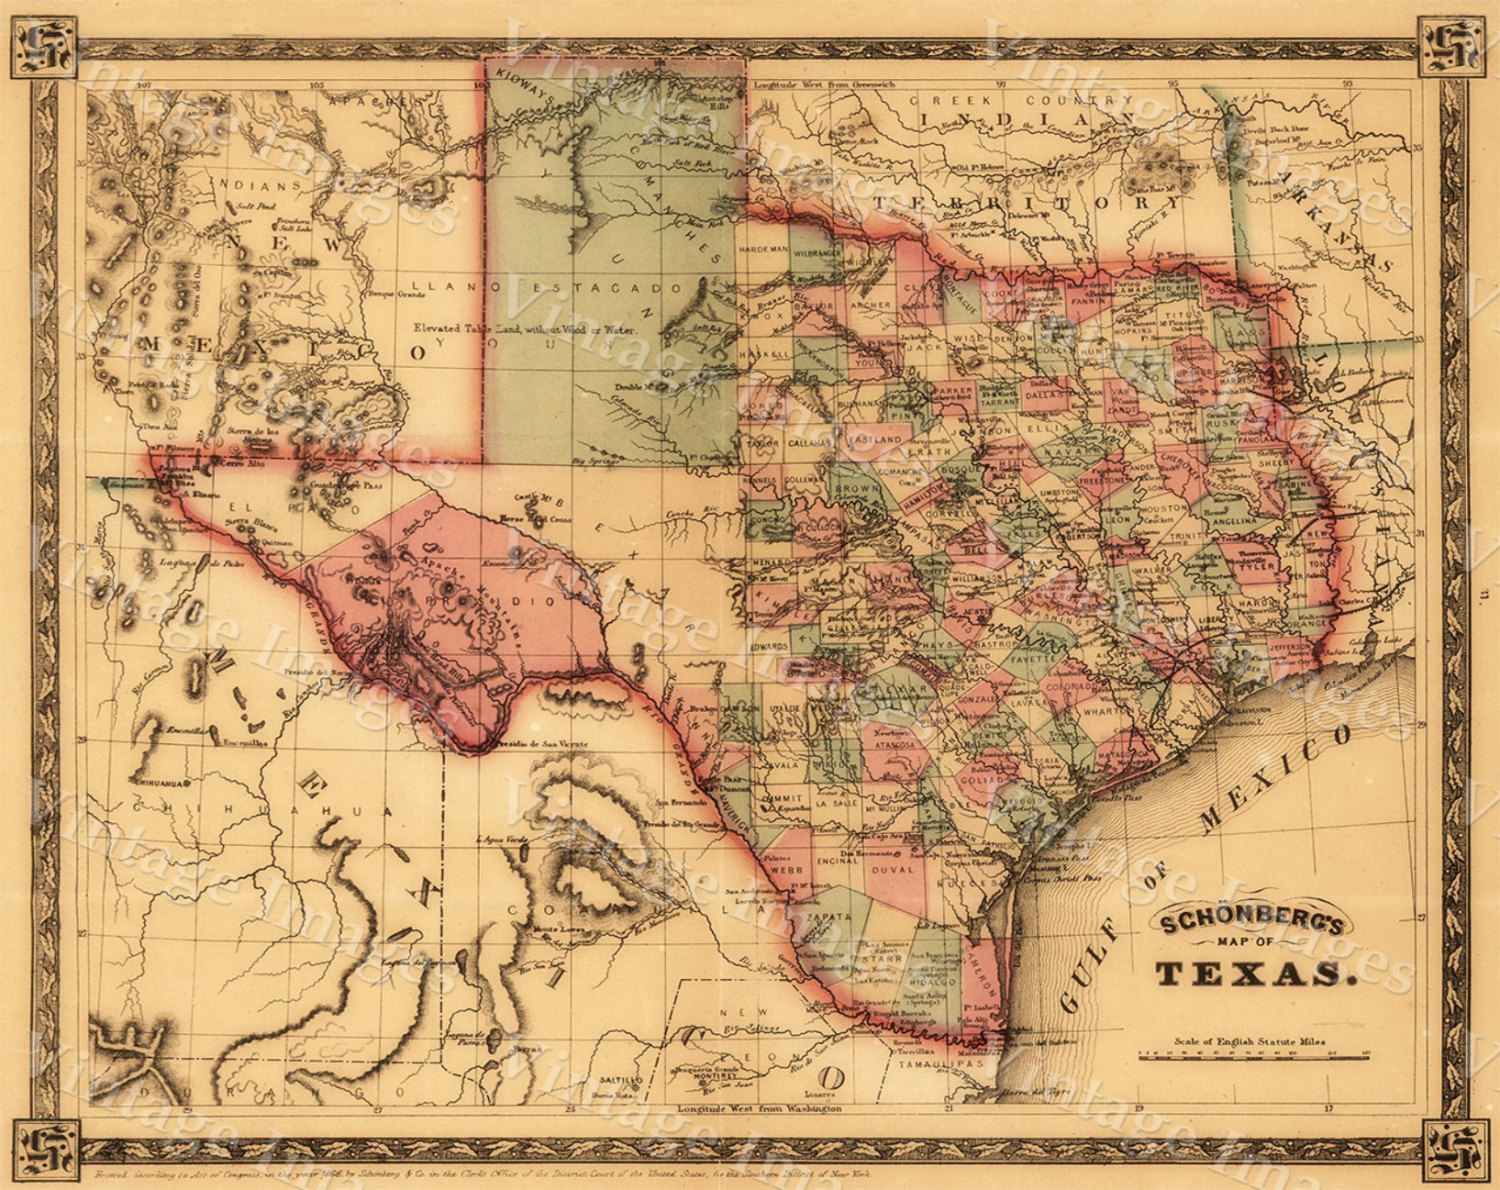 Texas Map Giant 1866 Old Texas Map Old West Map Antique - Giant Texas Wall Map